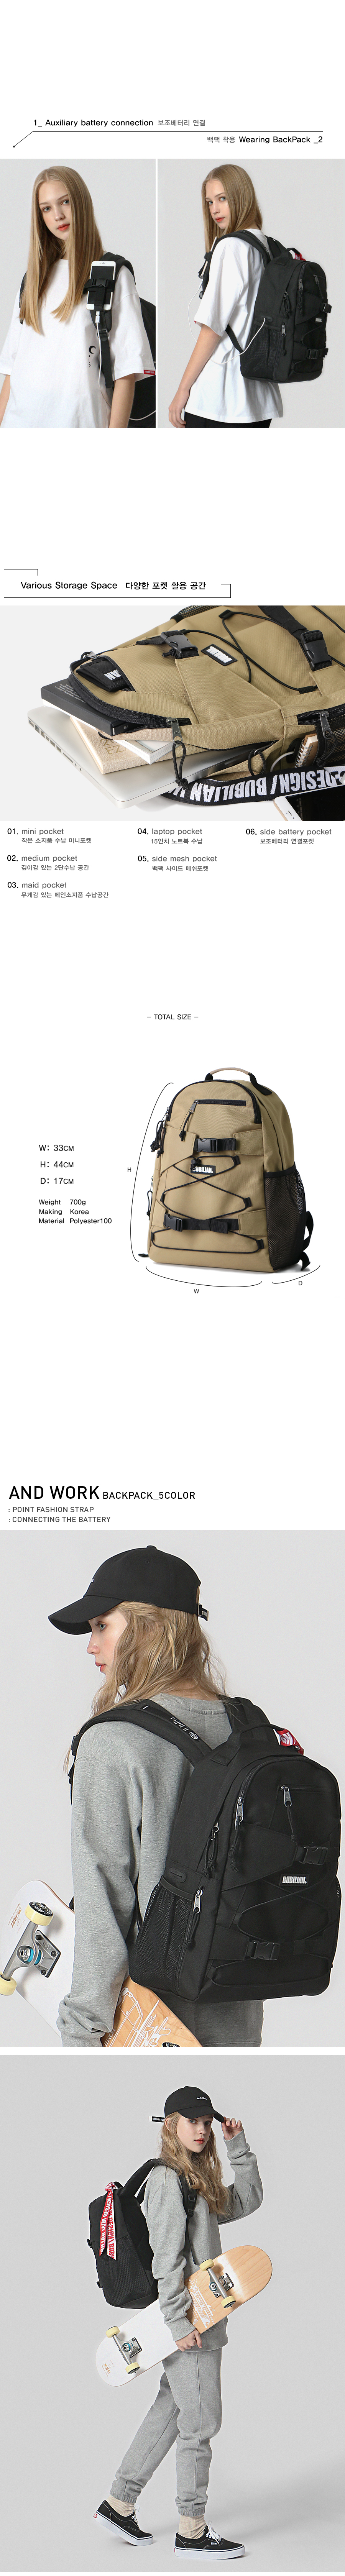 [스트랩 포함]Bubilian And Work Backpack _ [CAPPUCCINO]